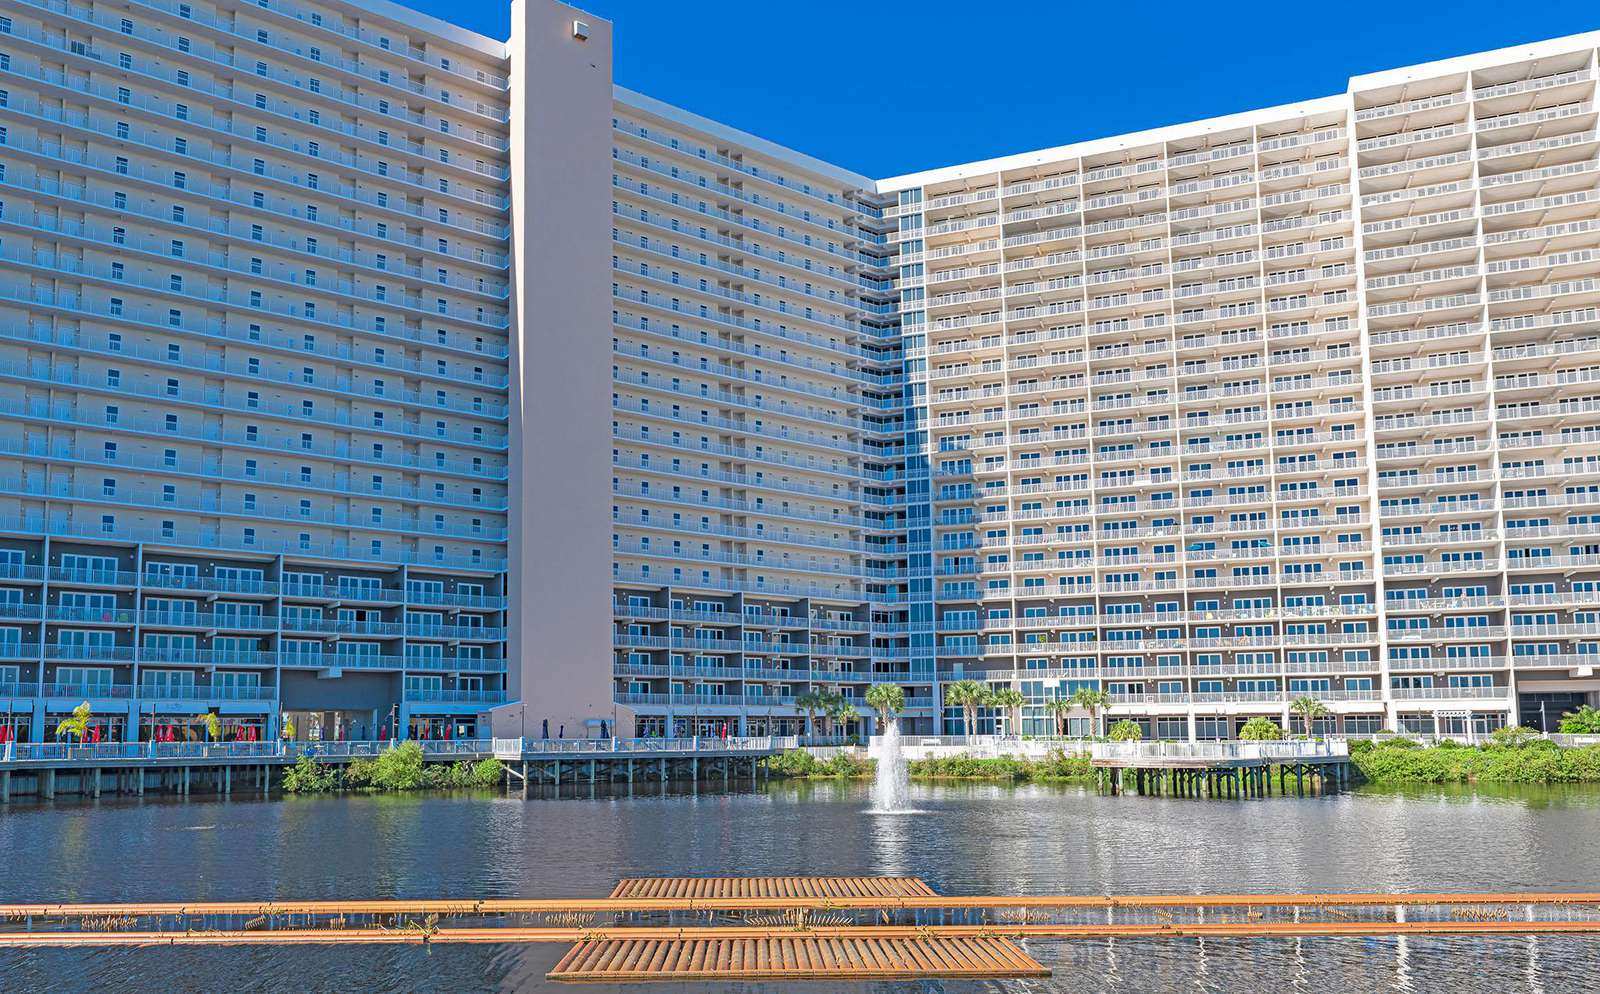 Laketown Wharf boasts 5 pools, exercise facility and more!